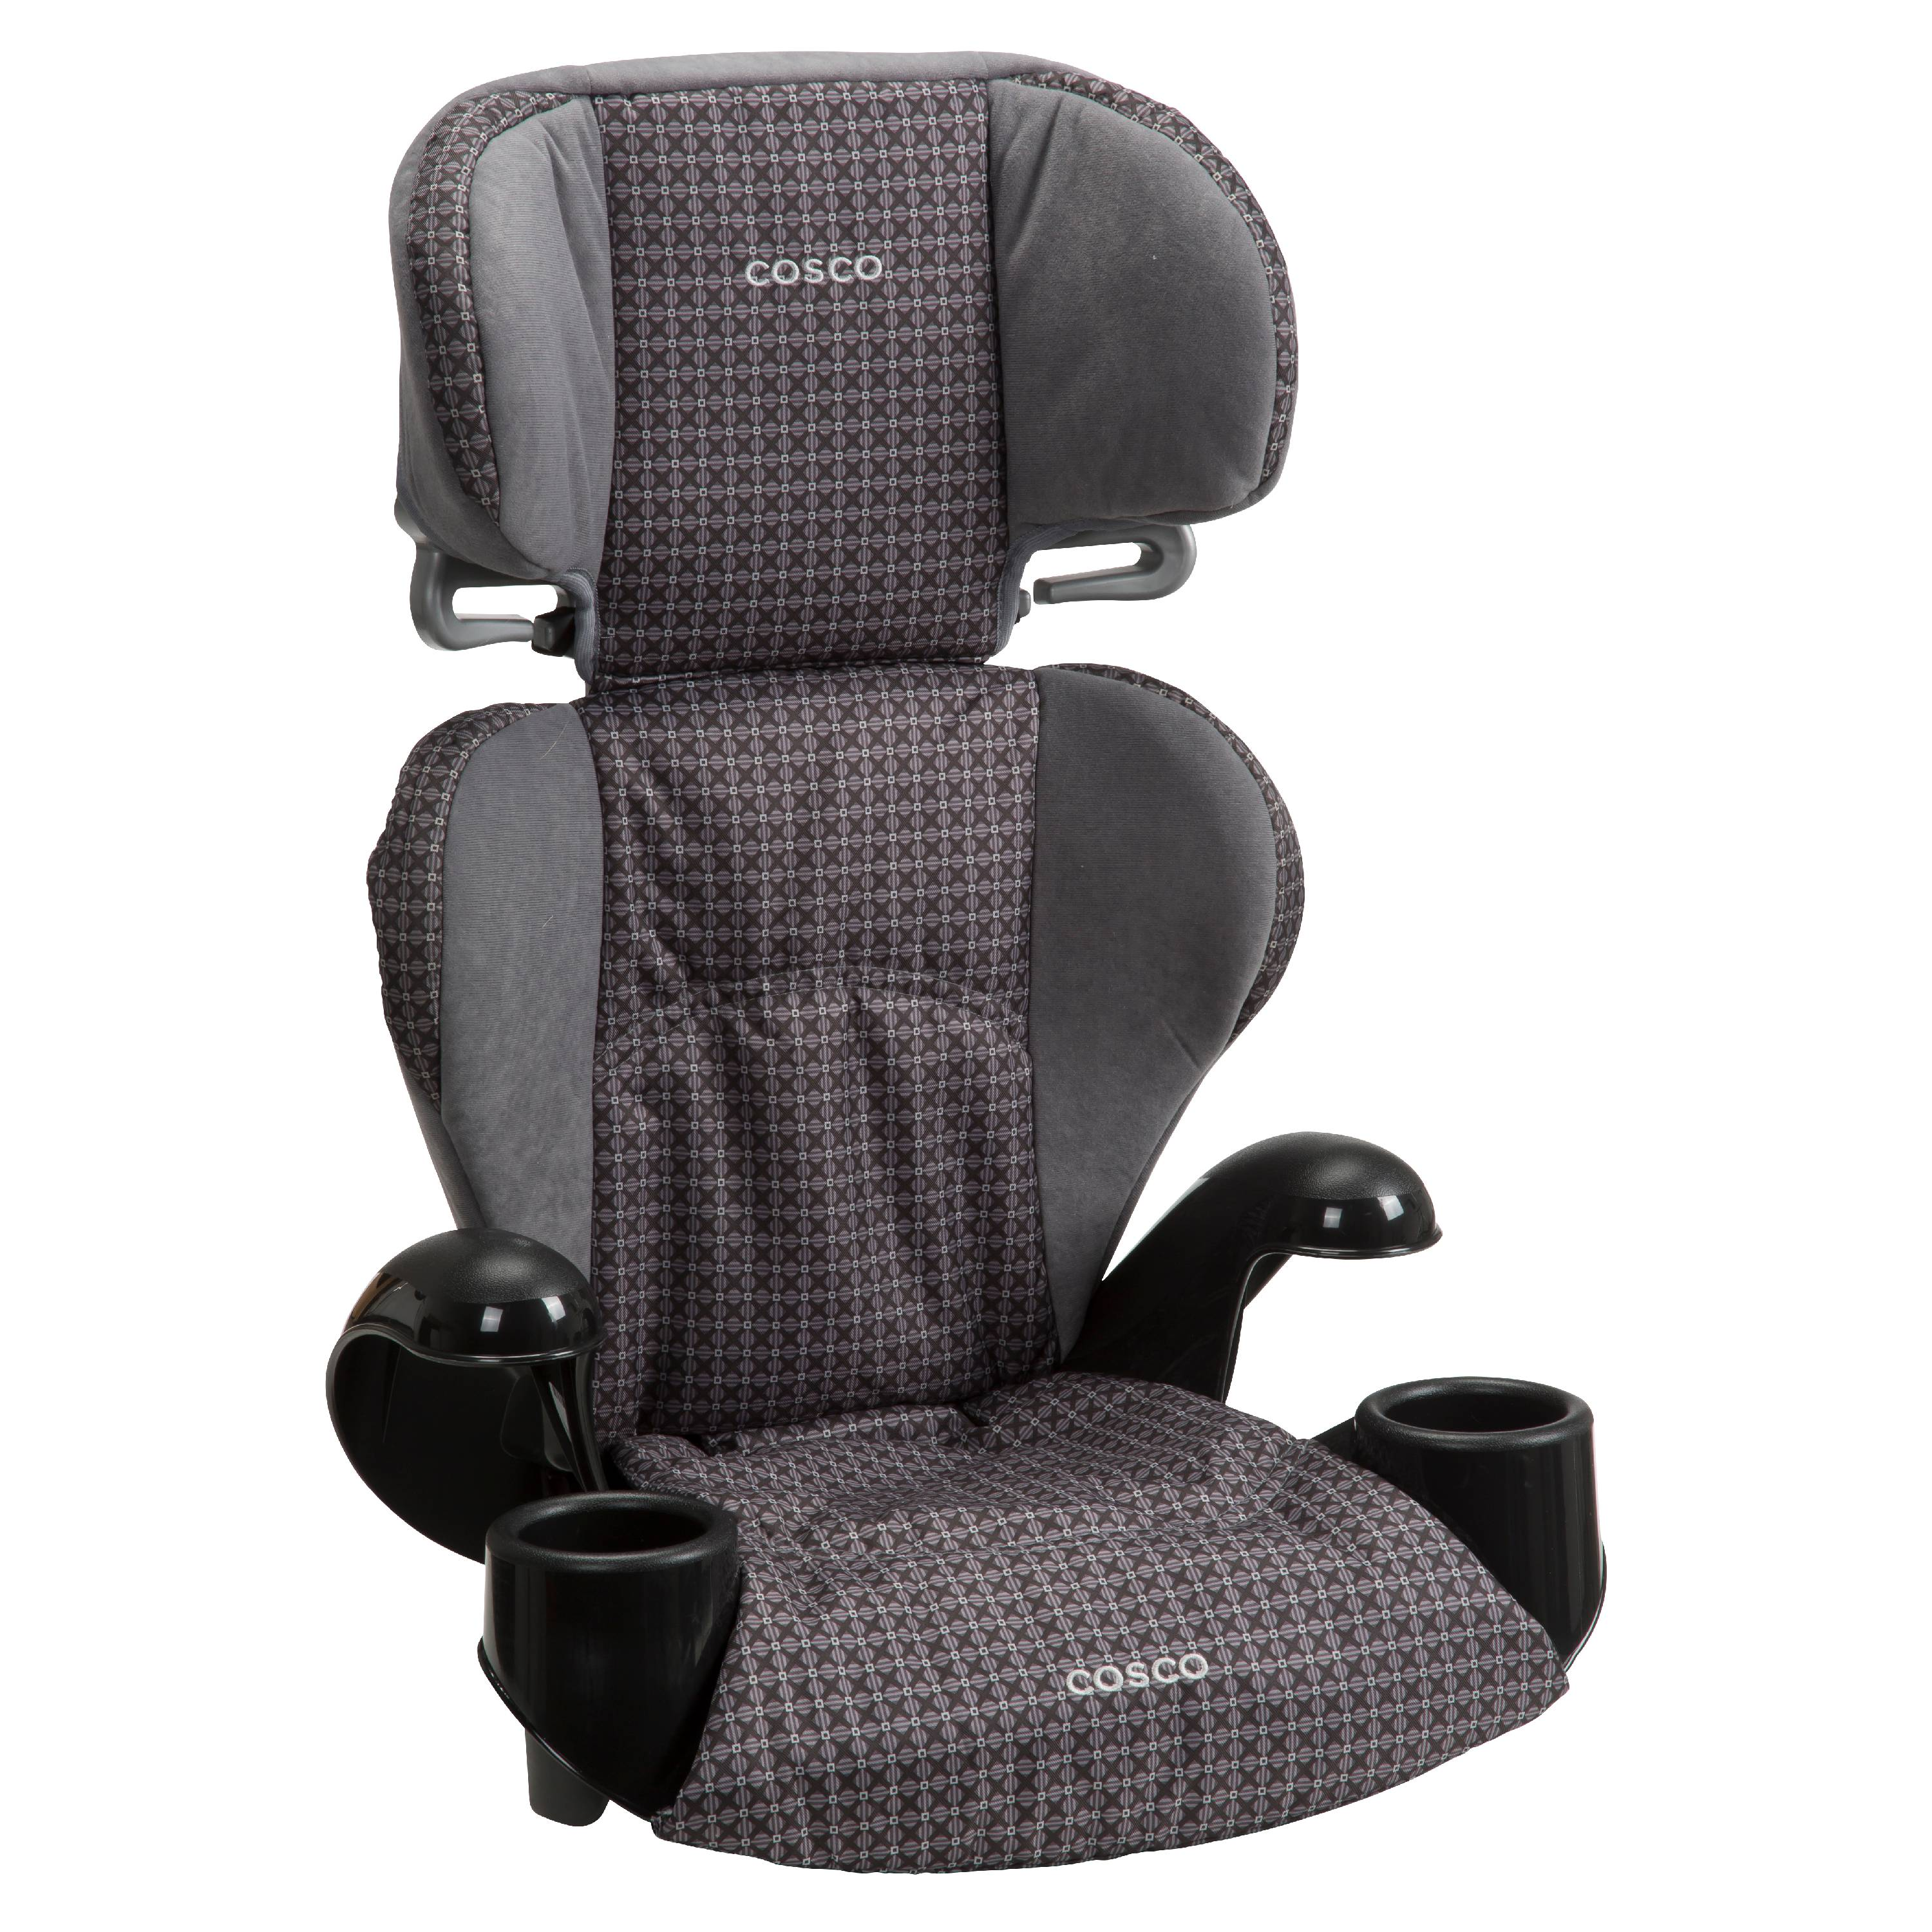 Dorel Juvenile Group Cosco Rightway Booster Car Seat, Emerson